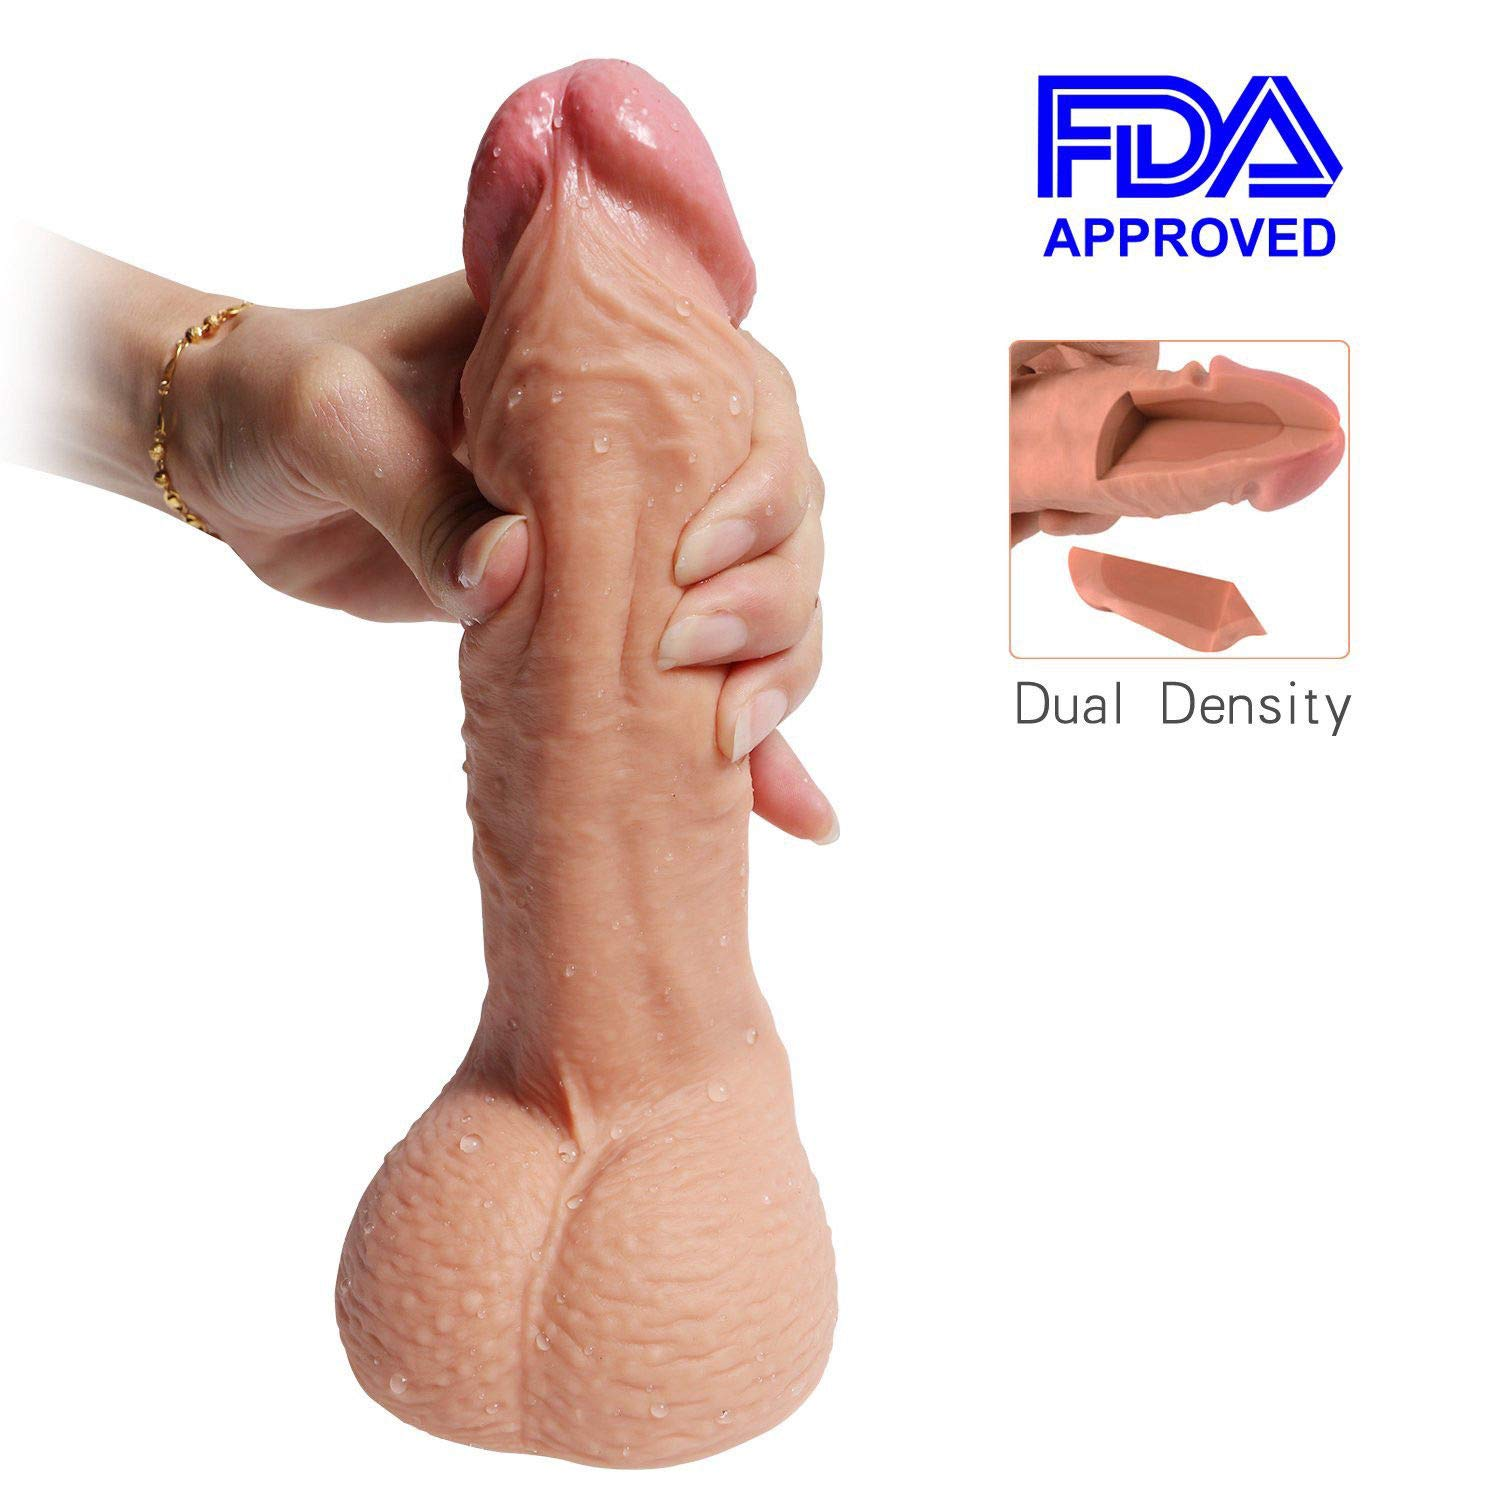 Hyper Realistic 7.87'' Dildo, Bendable G-Spot Premium Liquid Silicone Penis Dong Cock with Suction Cup Sex Toy for Female Masturbation (7.87 Inch)